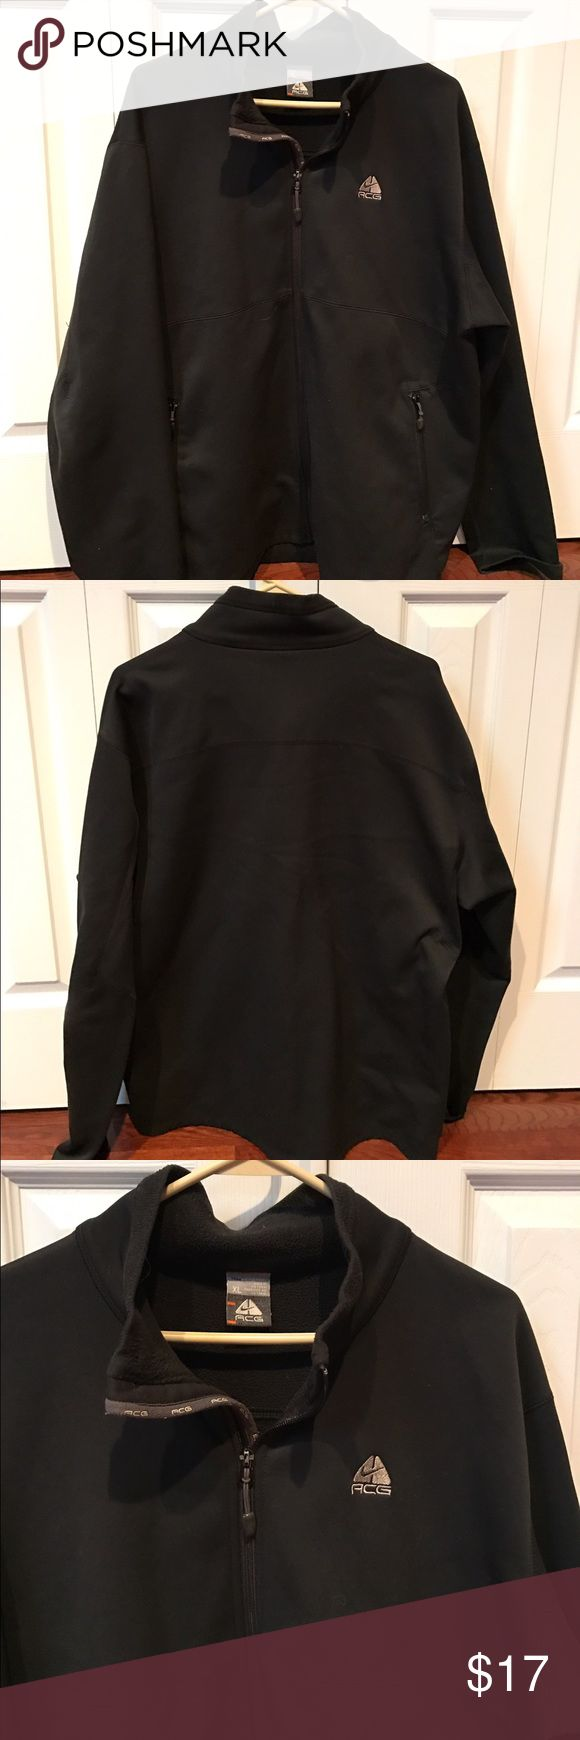 Nike ACG Jacket Nike ACG Jacket size XL.  Excellent condition. 100% polyester. Therma- fit soft shell wind resistant. Soft fleece inside. 2 zip side pockets. Nike Jackets & Coats